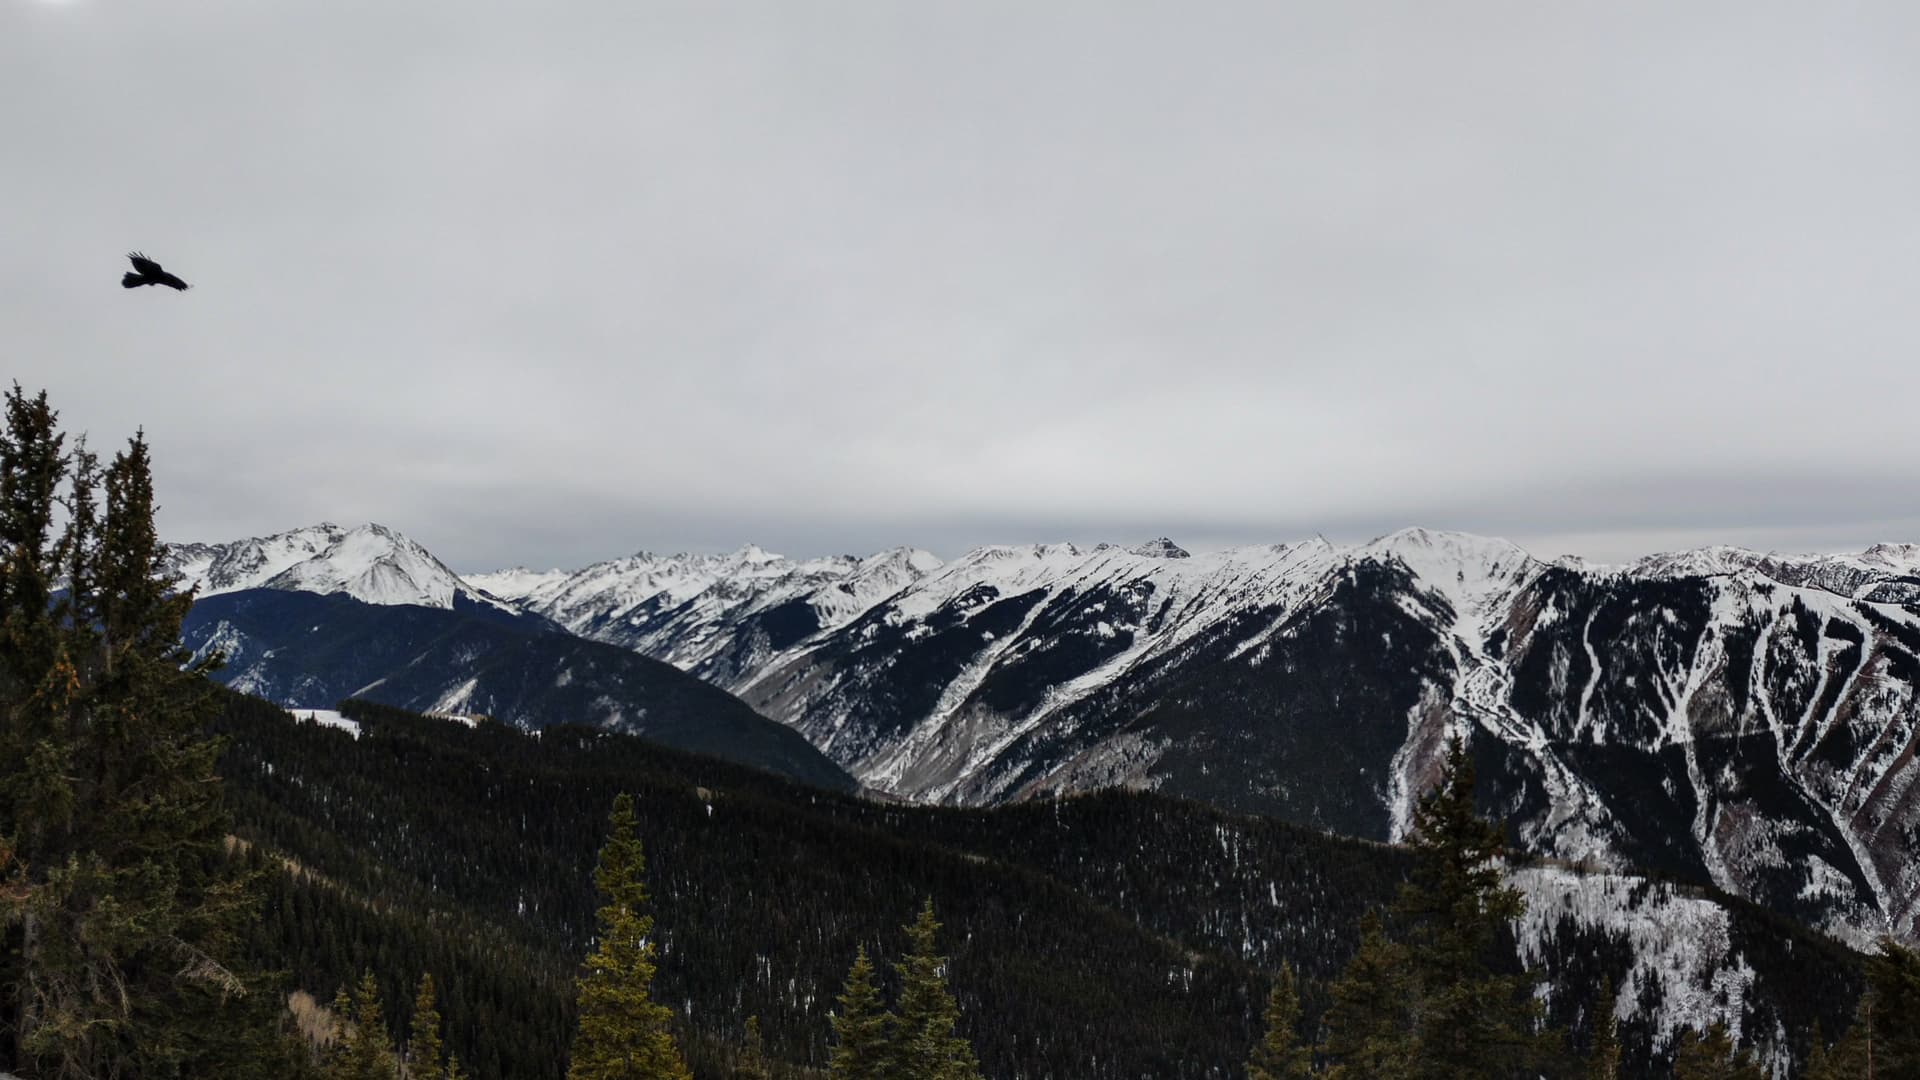 Snow-capped mountains border a steep valley. The winter sky is cold and gray. On the right, a crow takes flight.